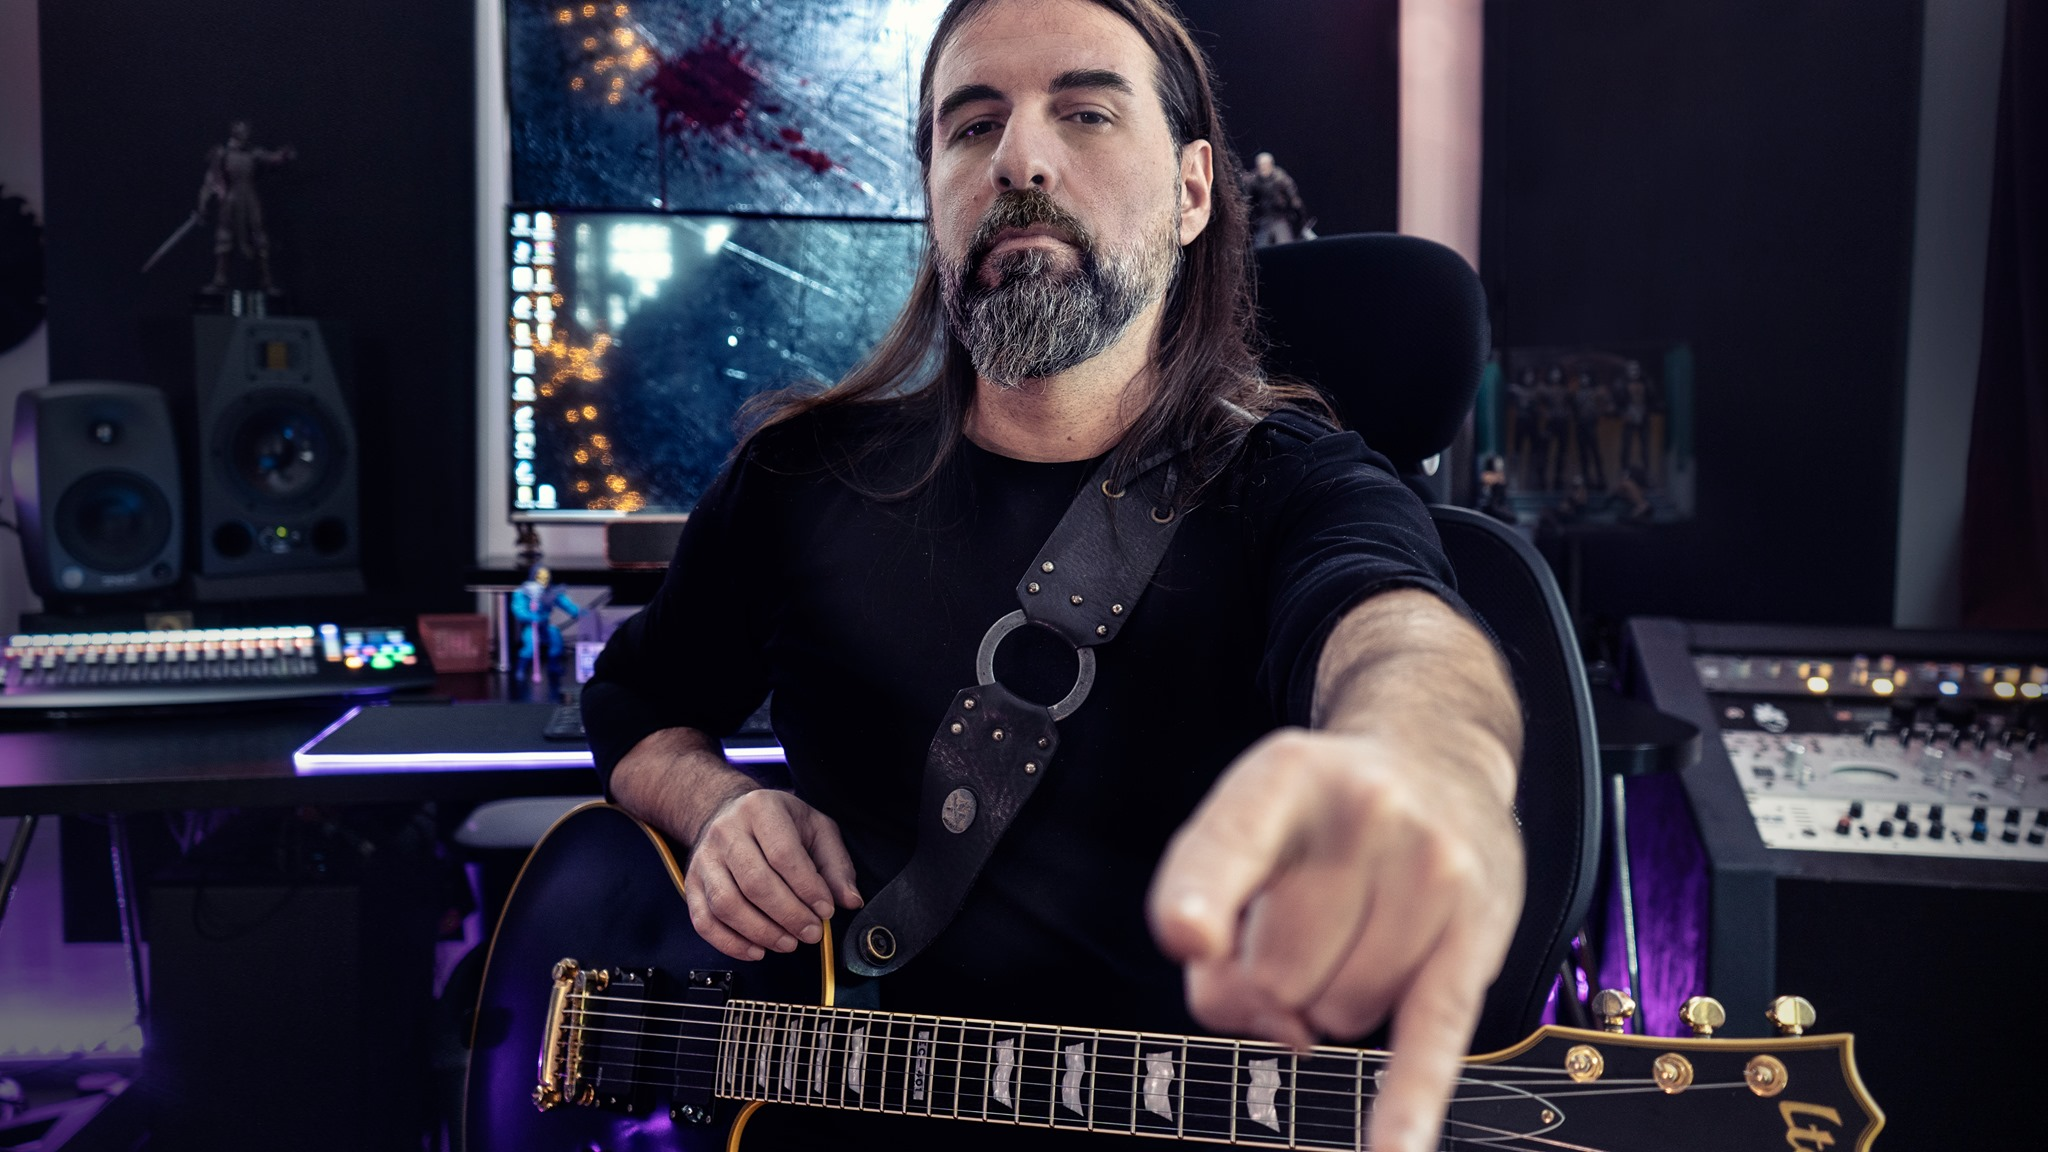 Sakis Tolis (ROTTING CHRIST): Recording Guitars For His One Man Band Solo Project.